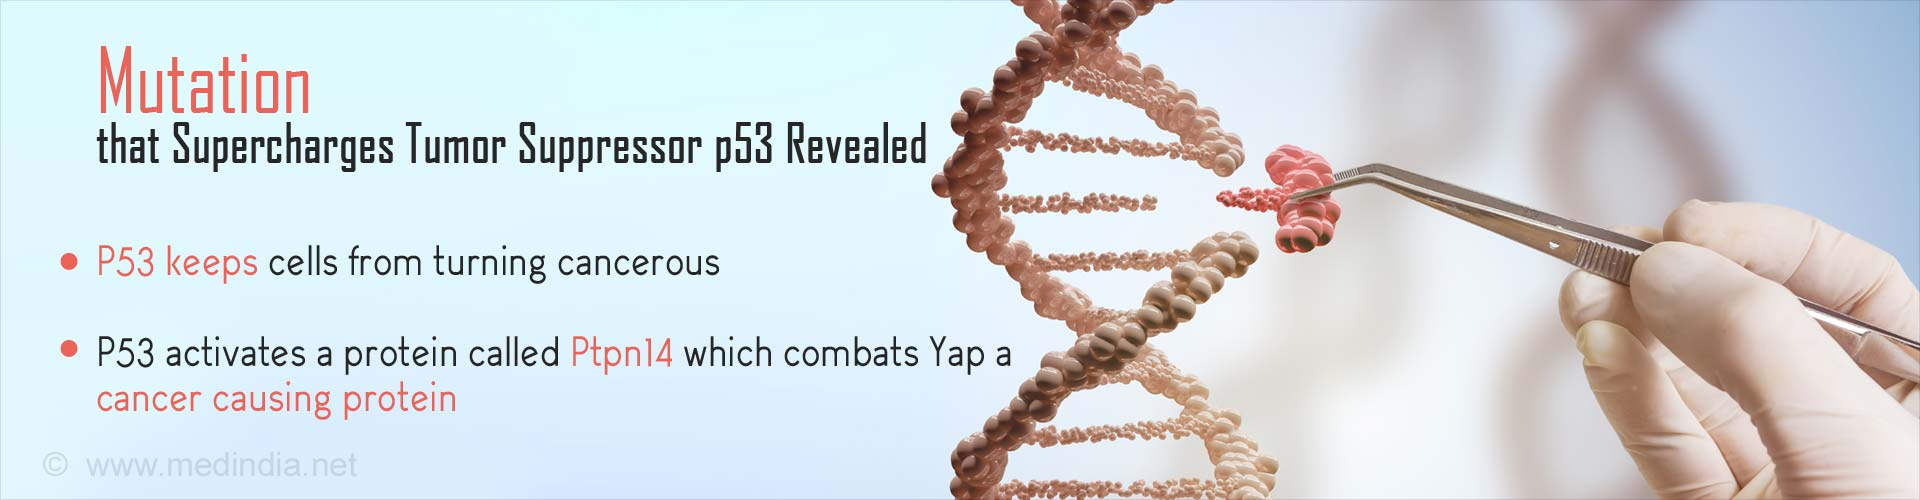 Stanford-led Study Uncovers Secrets of P53 Tumor Suppressor